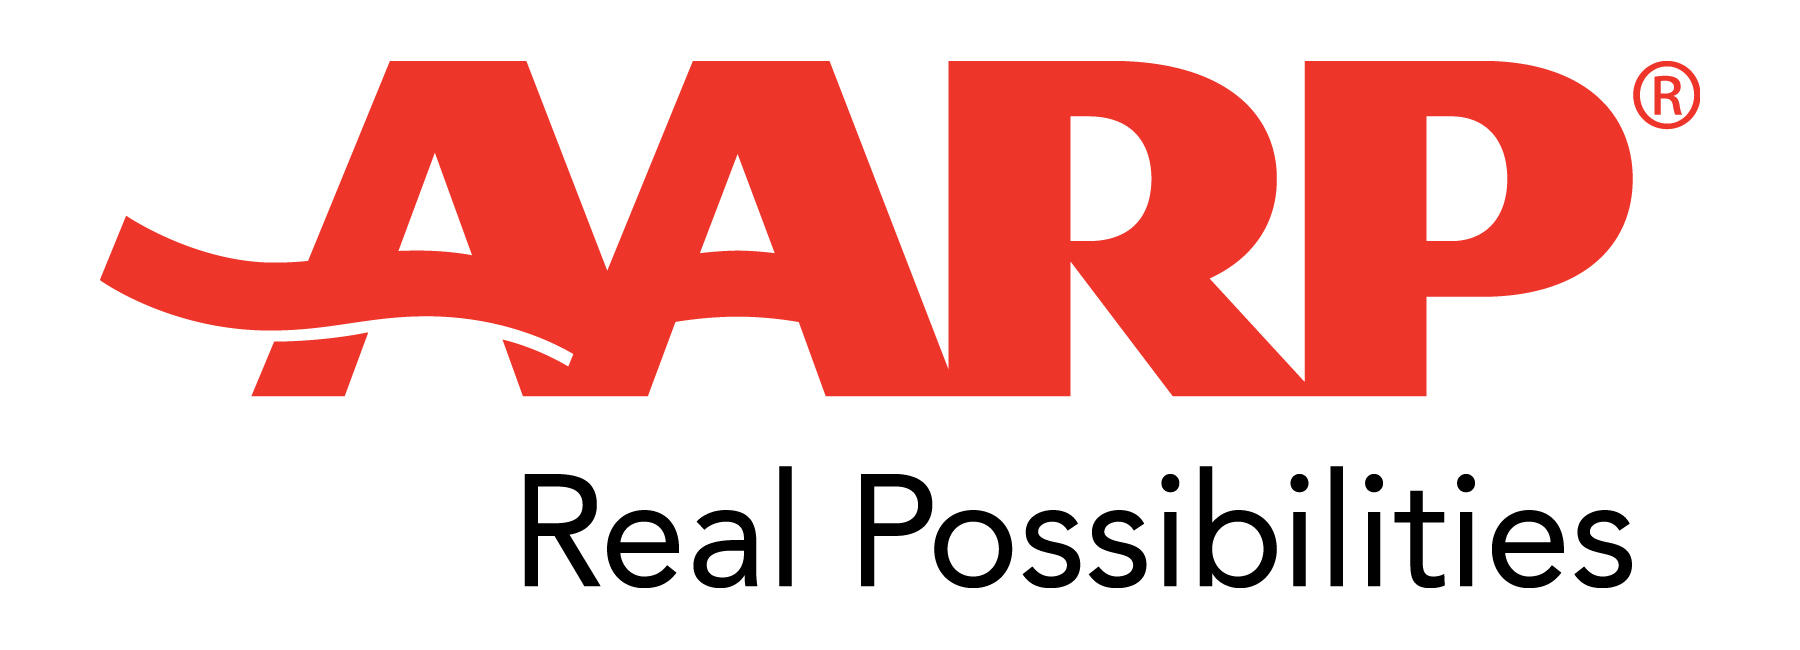 206. AARP Maryland (Friend)